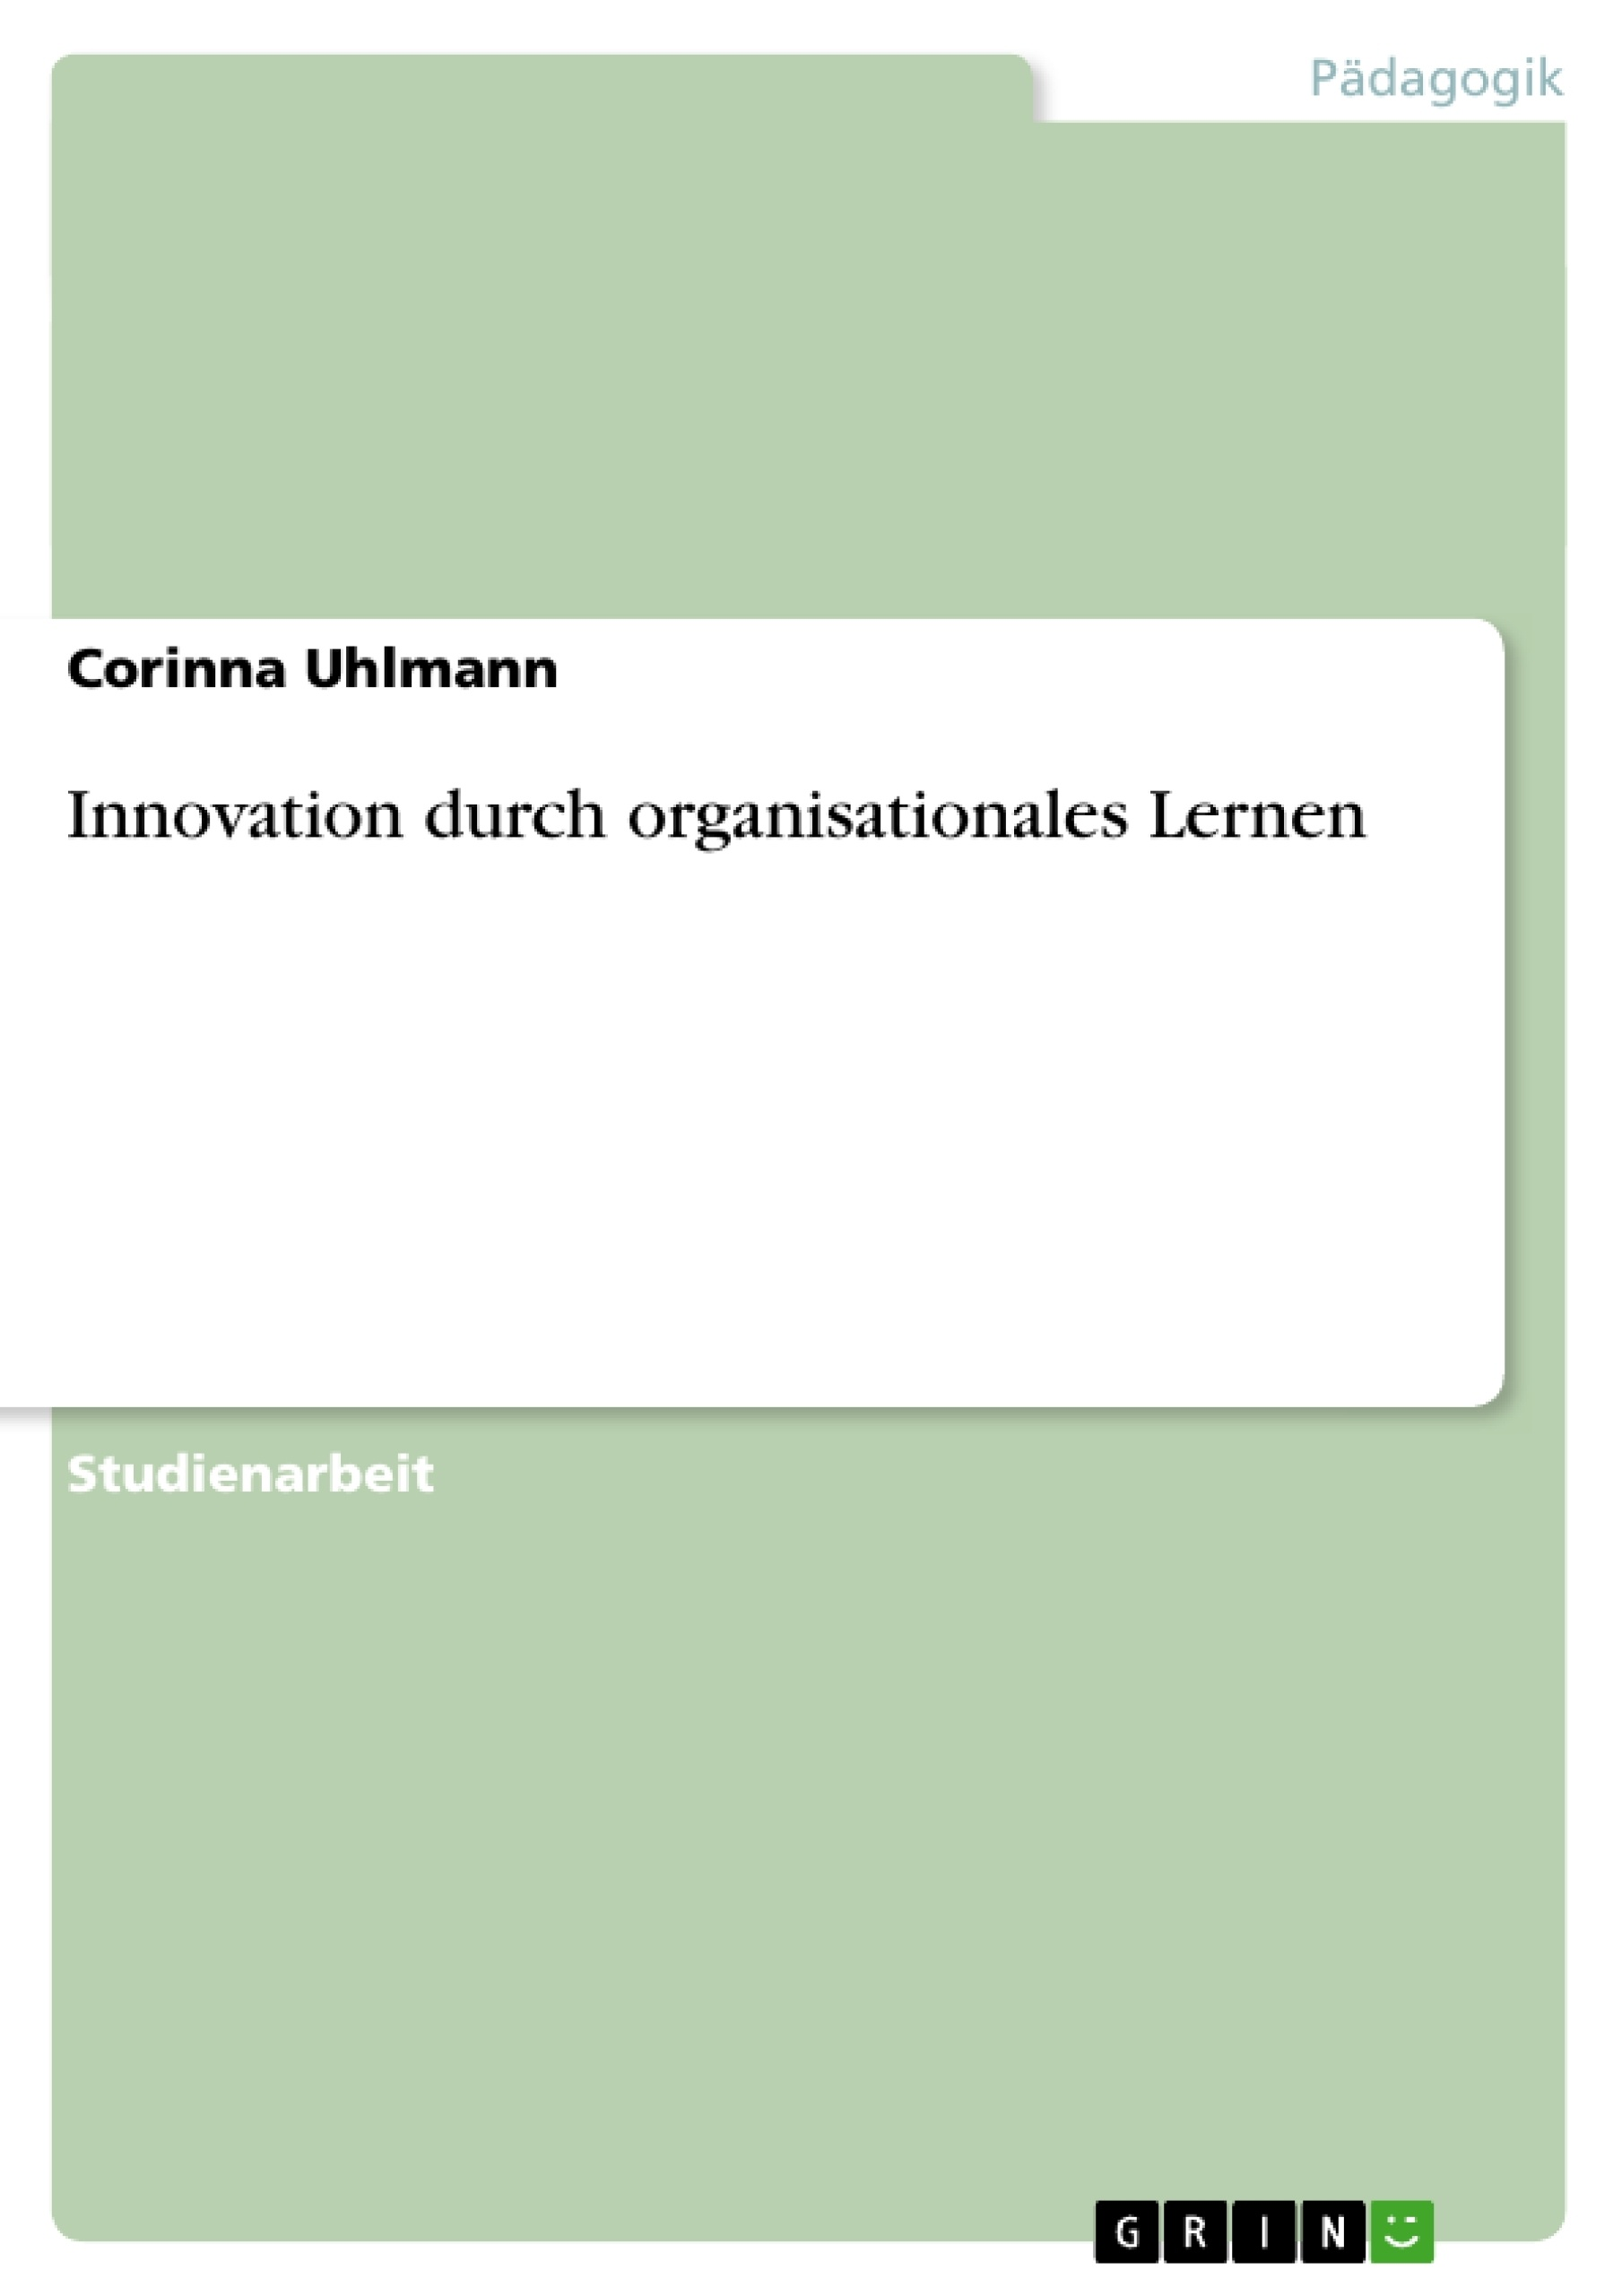 Titel: Innovation durch organisationales Lernen